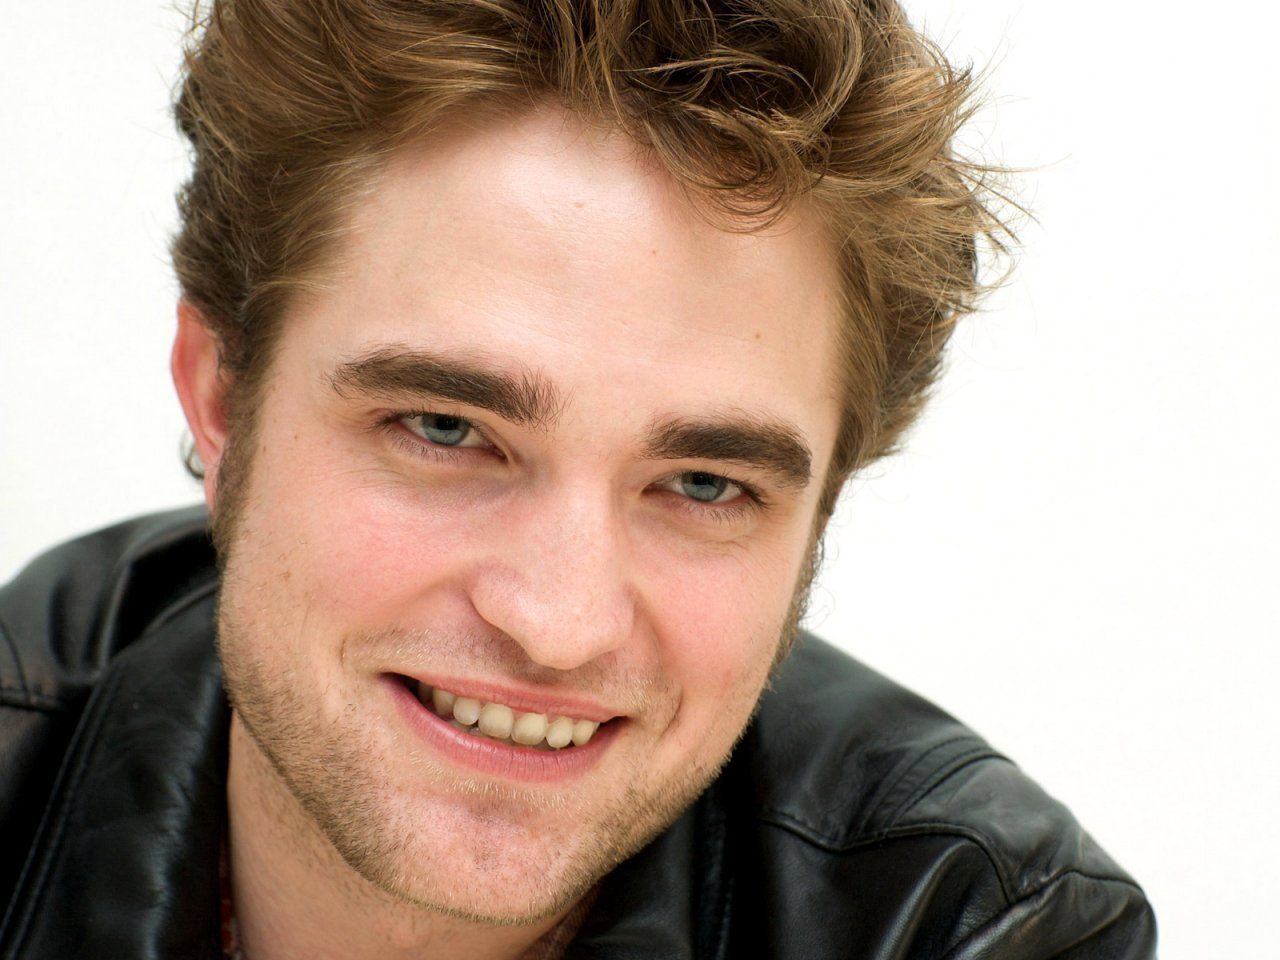 Robert Pattinson est incroyablement riche !